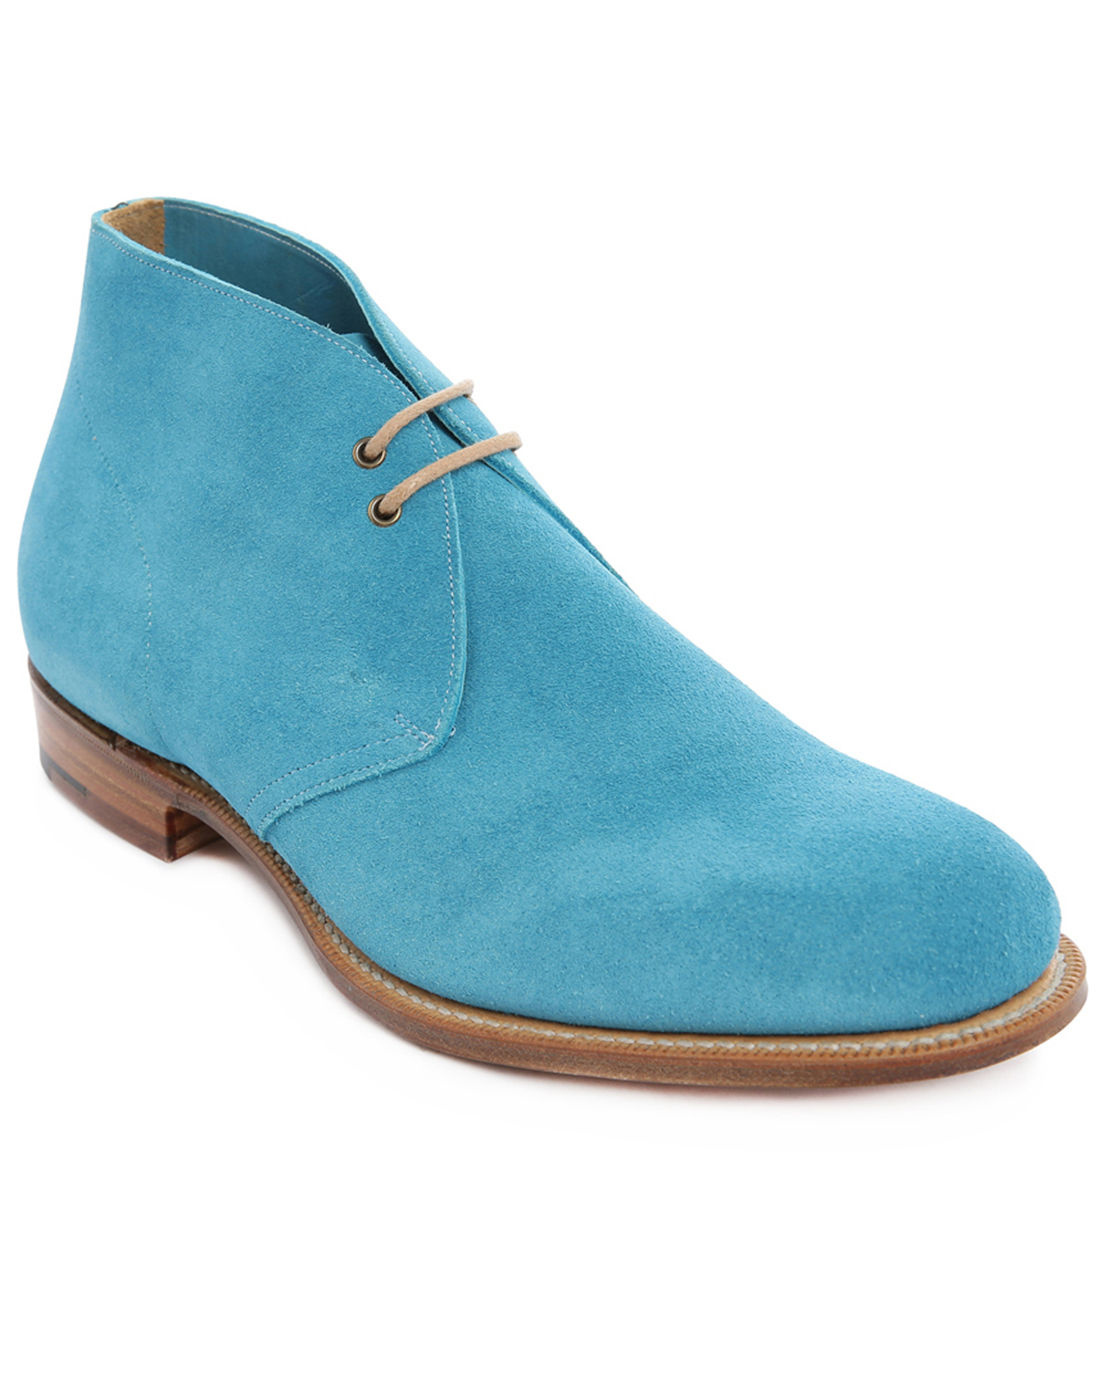 Turquoise Blue Suede Shoes